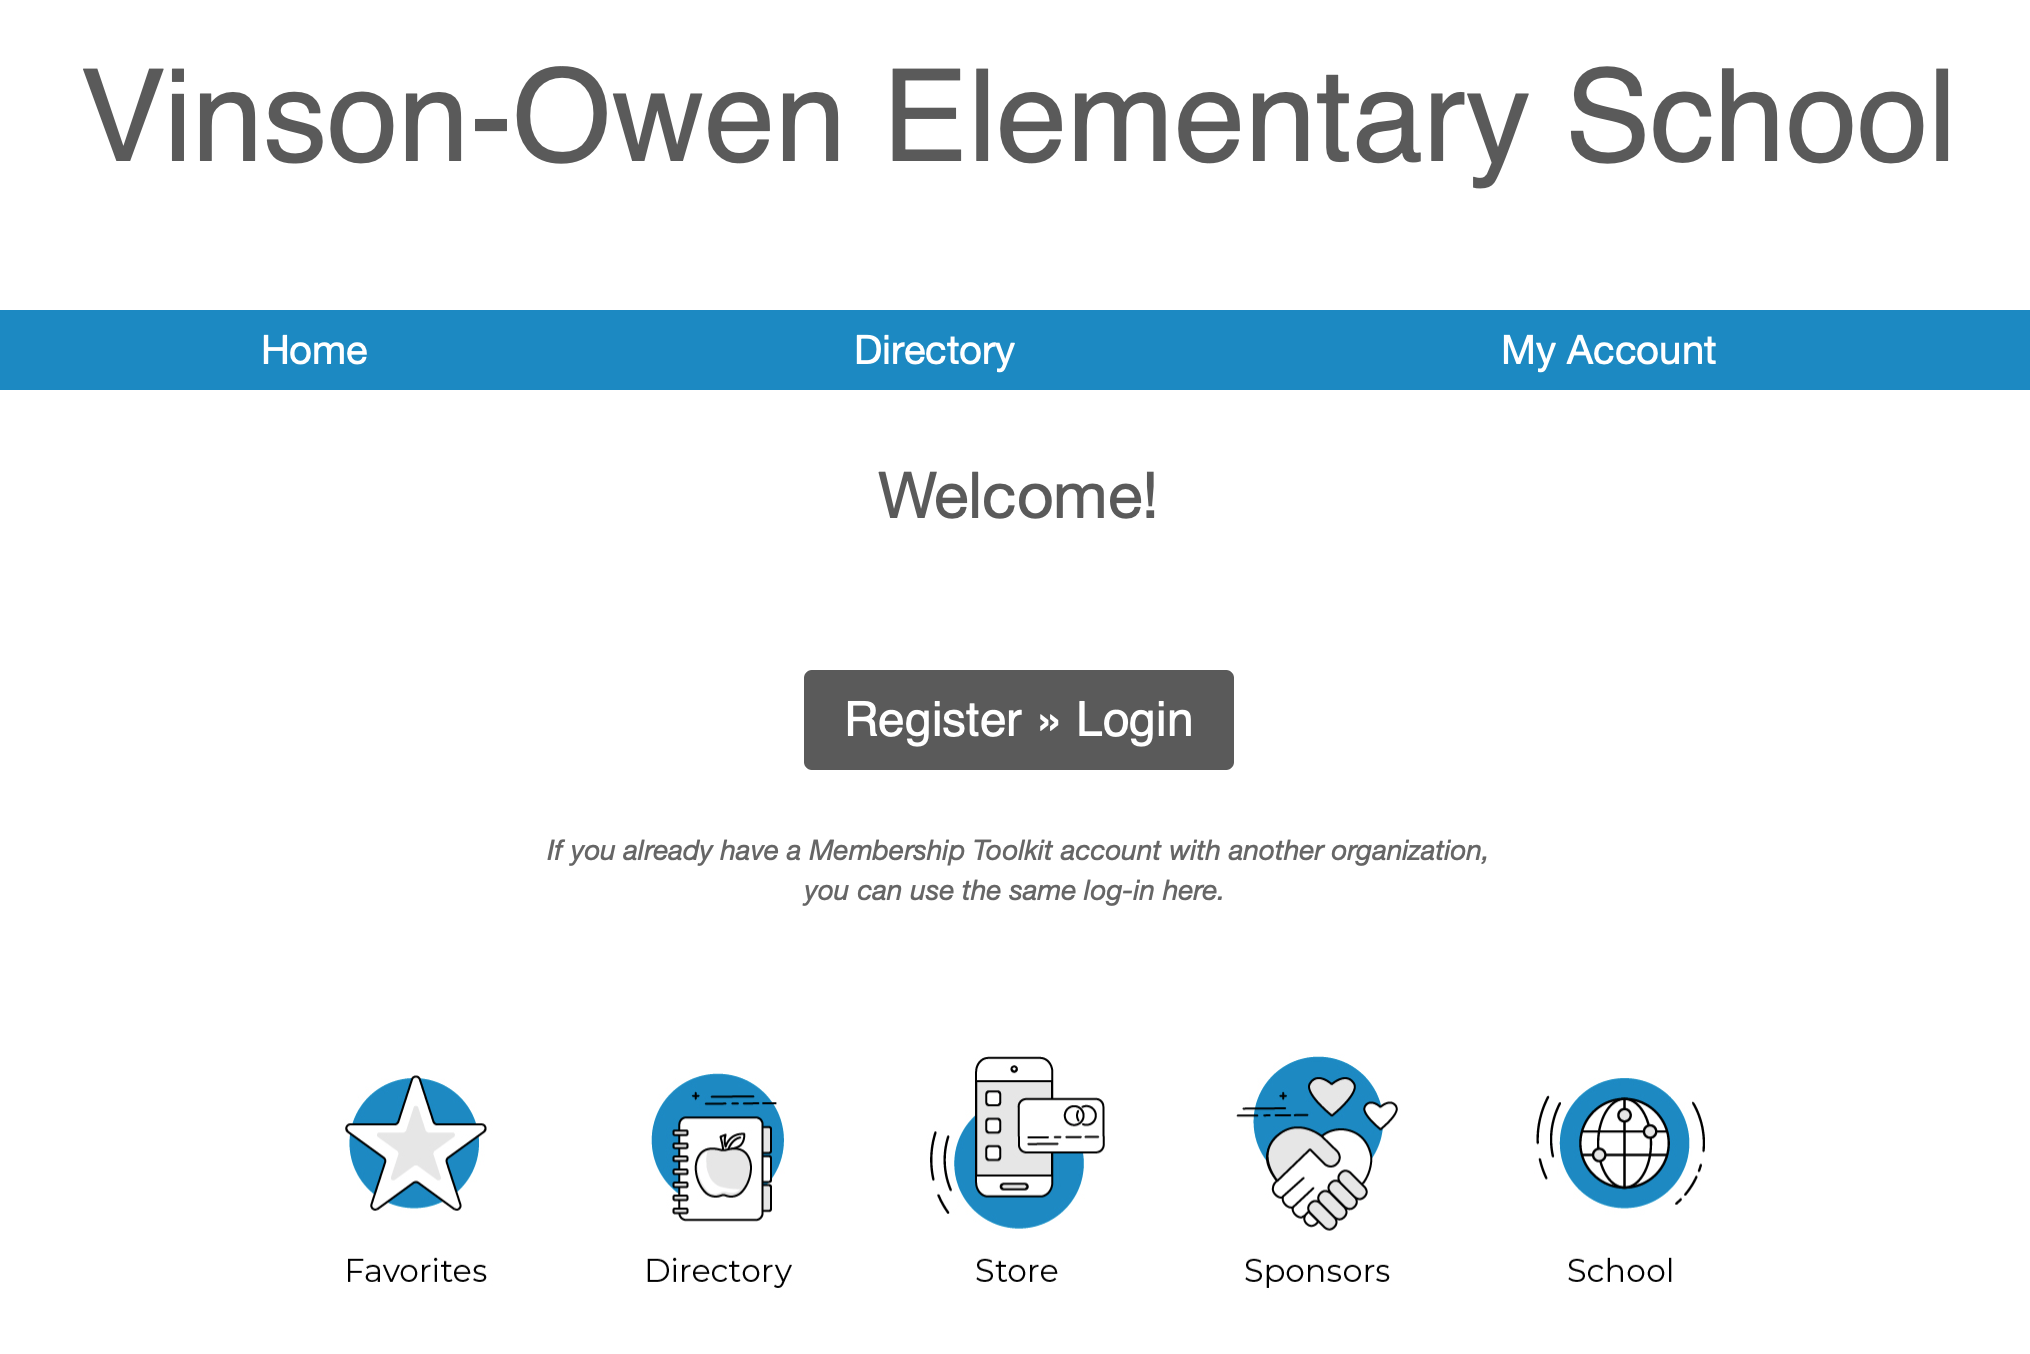 Vinson-Owen School Directory - Vinson-Owen uses a secure, online directory to help families and students within our school community stay in touch. Only current faculty and staff have access to the online directory.